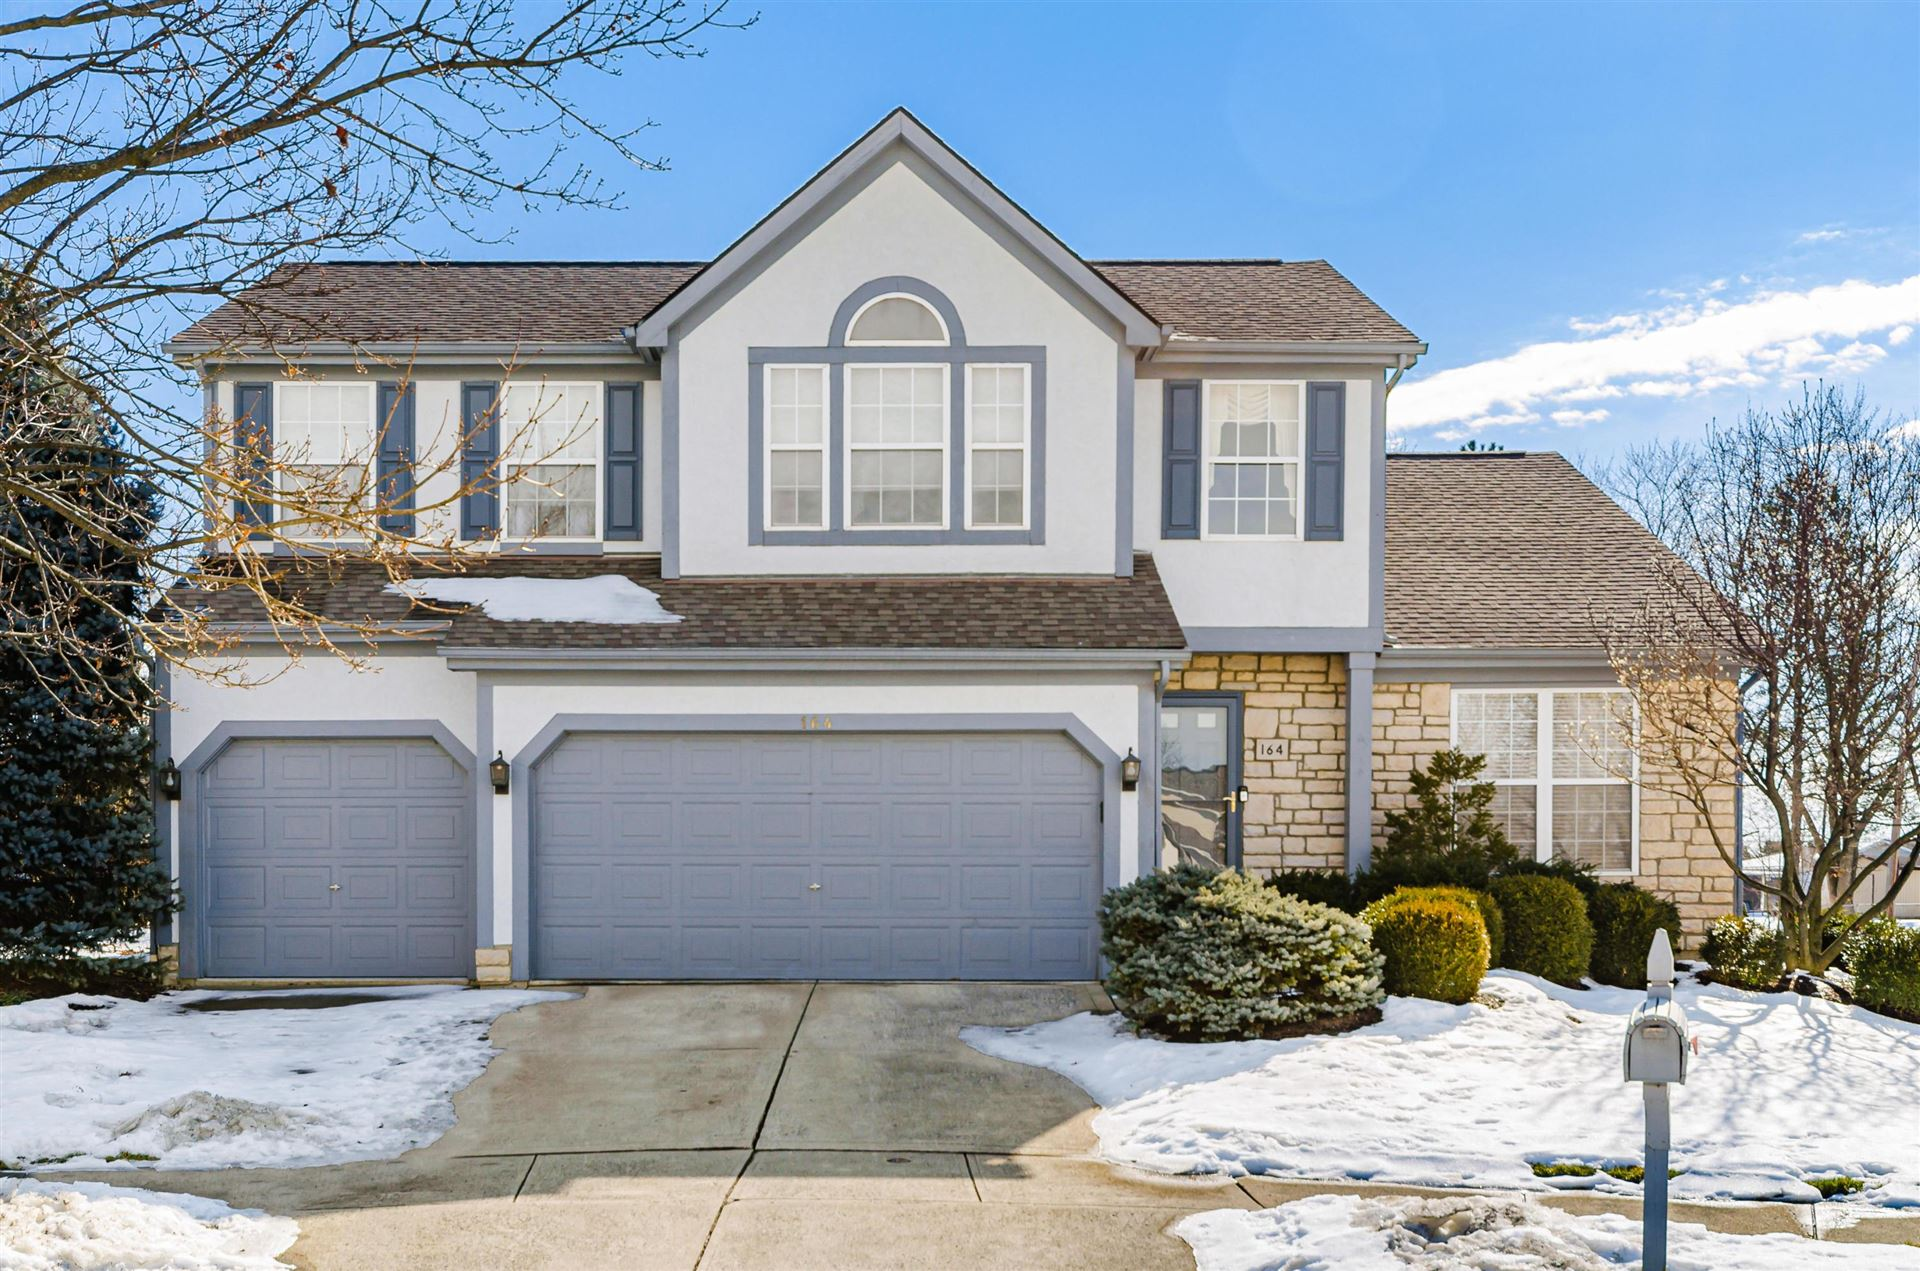 Photo of 164 Sandstone Loop E, Westerville, OH 43081 (MLS # 221005469)